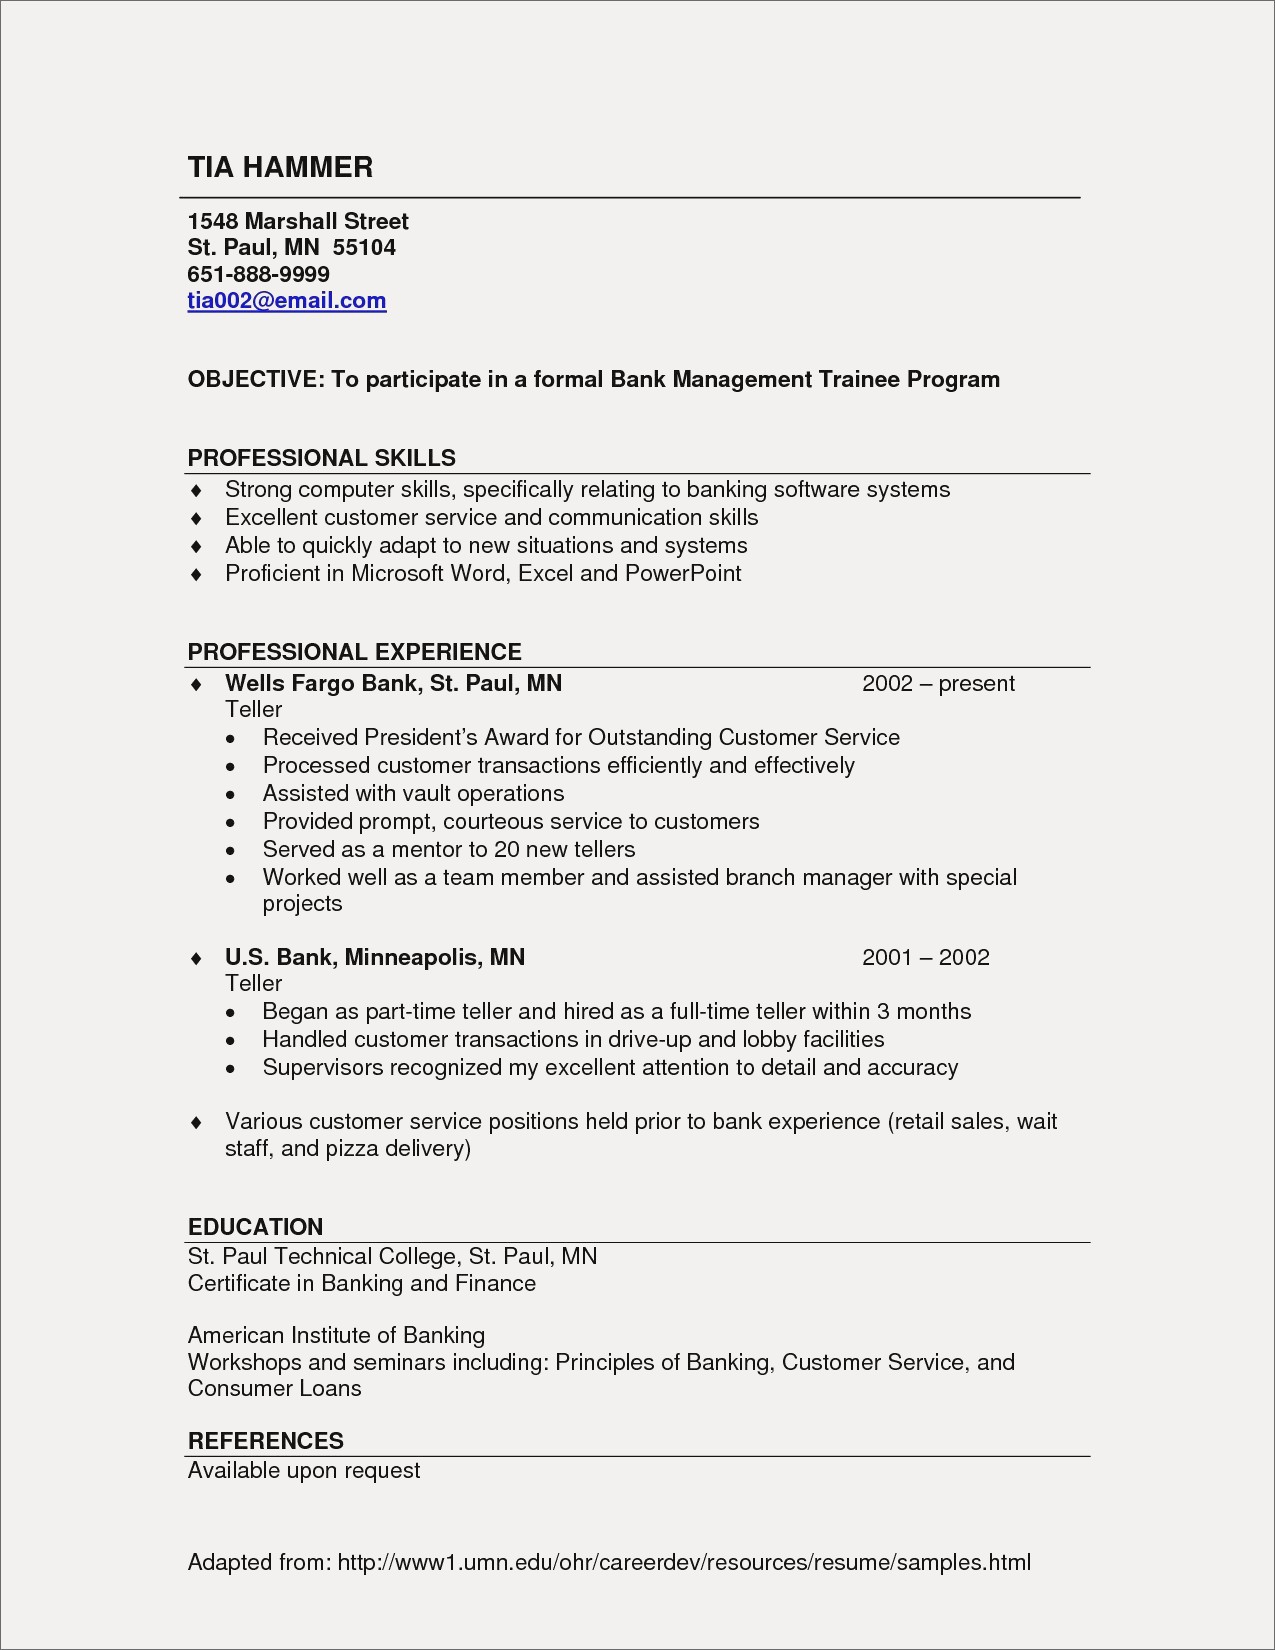 Profile Section Of Resume - Resume Templates for Customer Service Best Customer Service Resume